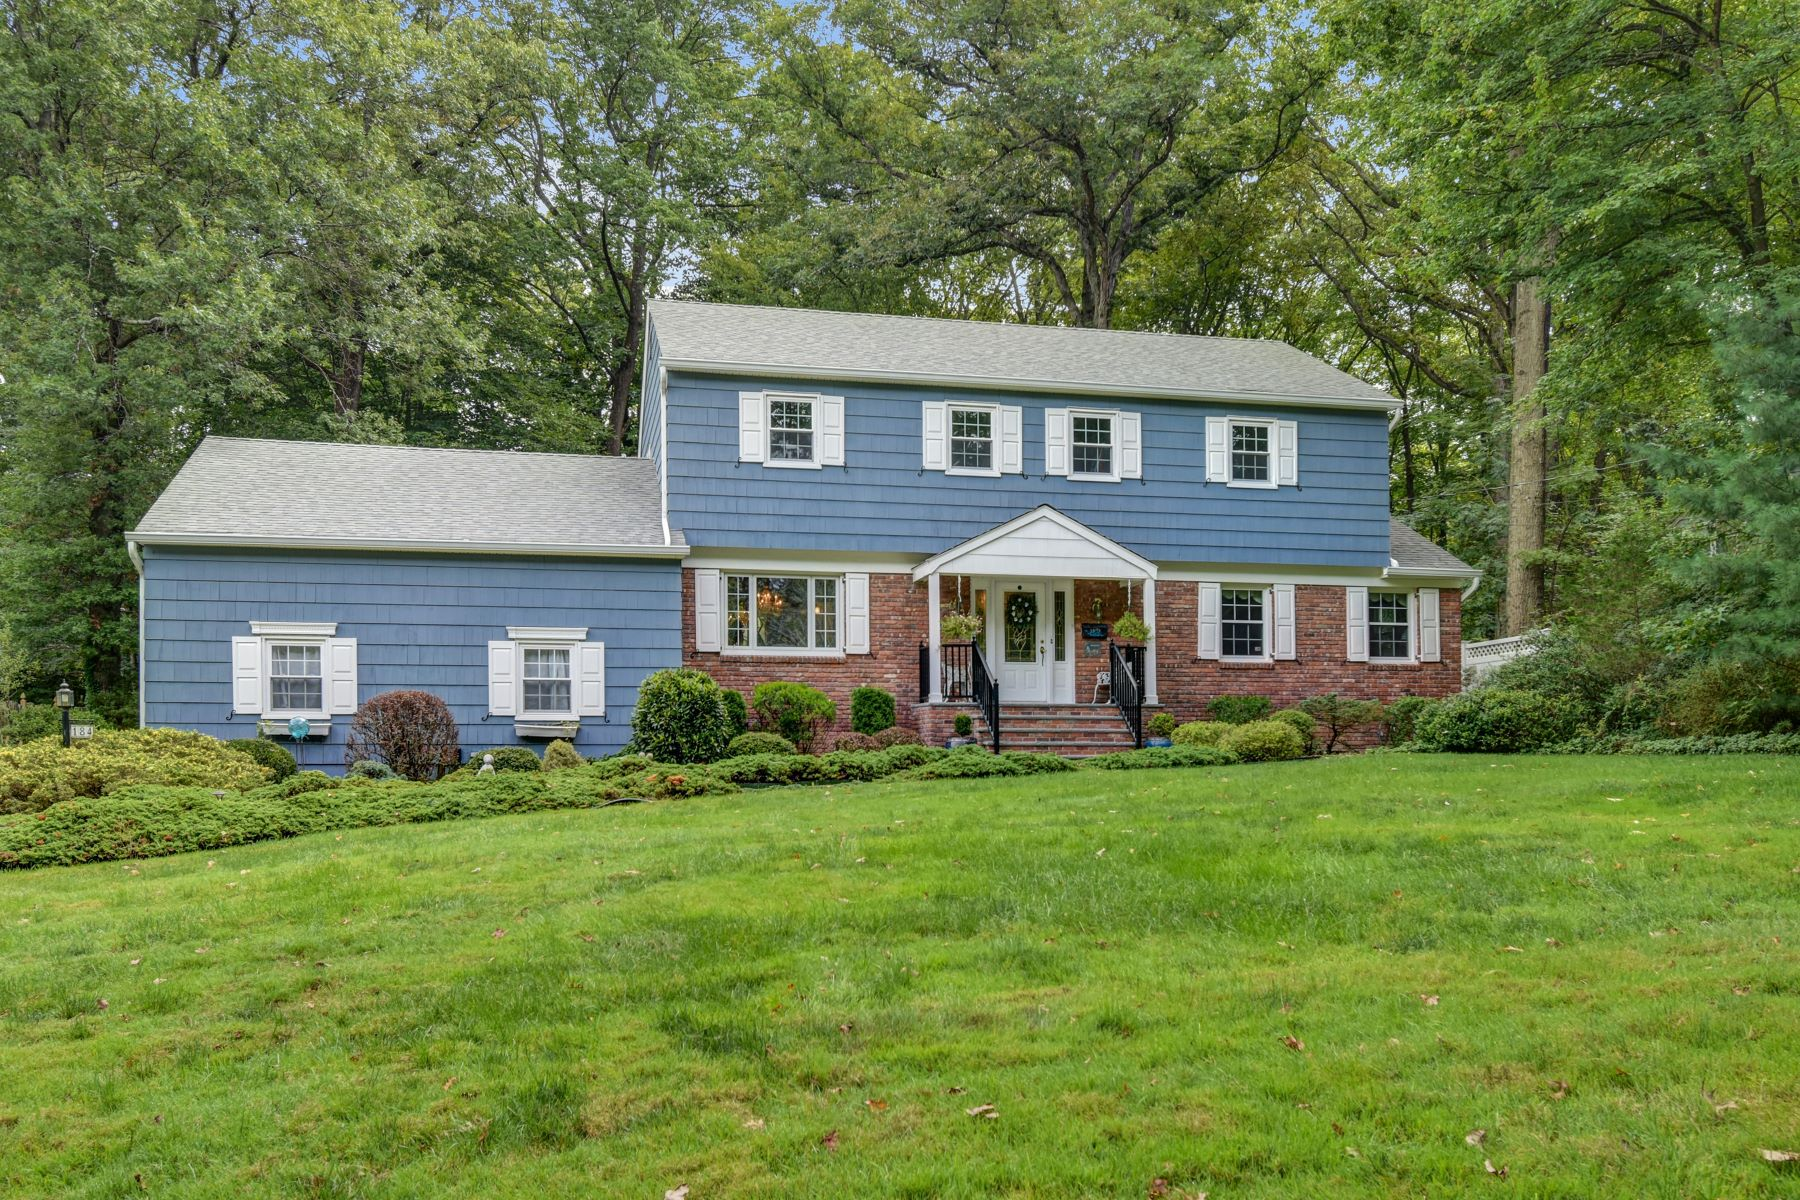 Single Family Homes for Sale at Well Maintained Colonial 184 Princeton Avenue Berkeley Heights, New Jersey 07922 United States